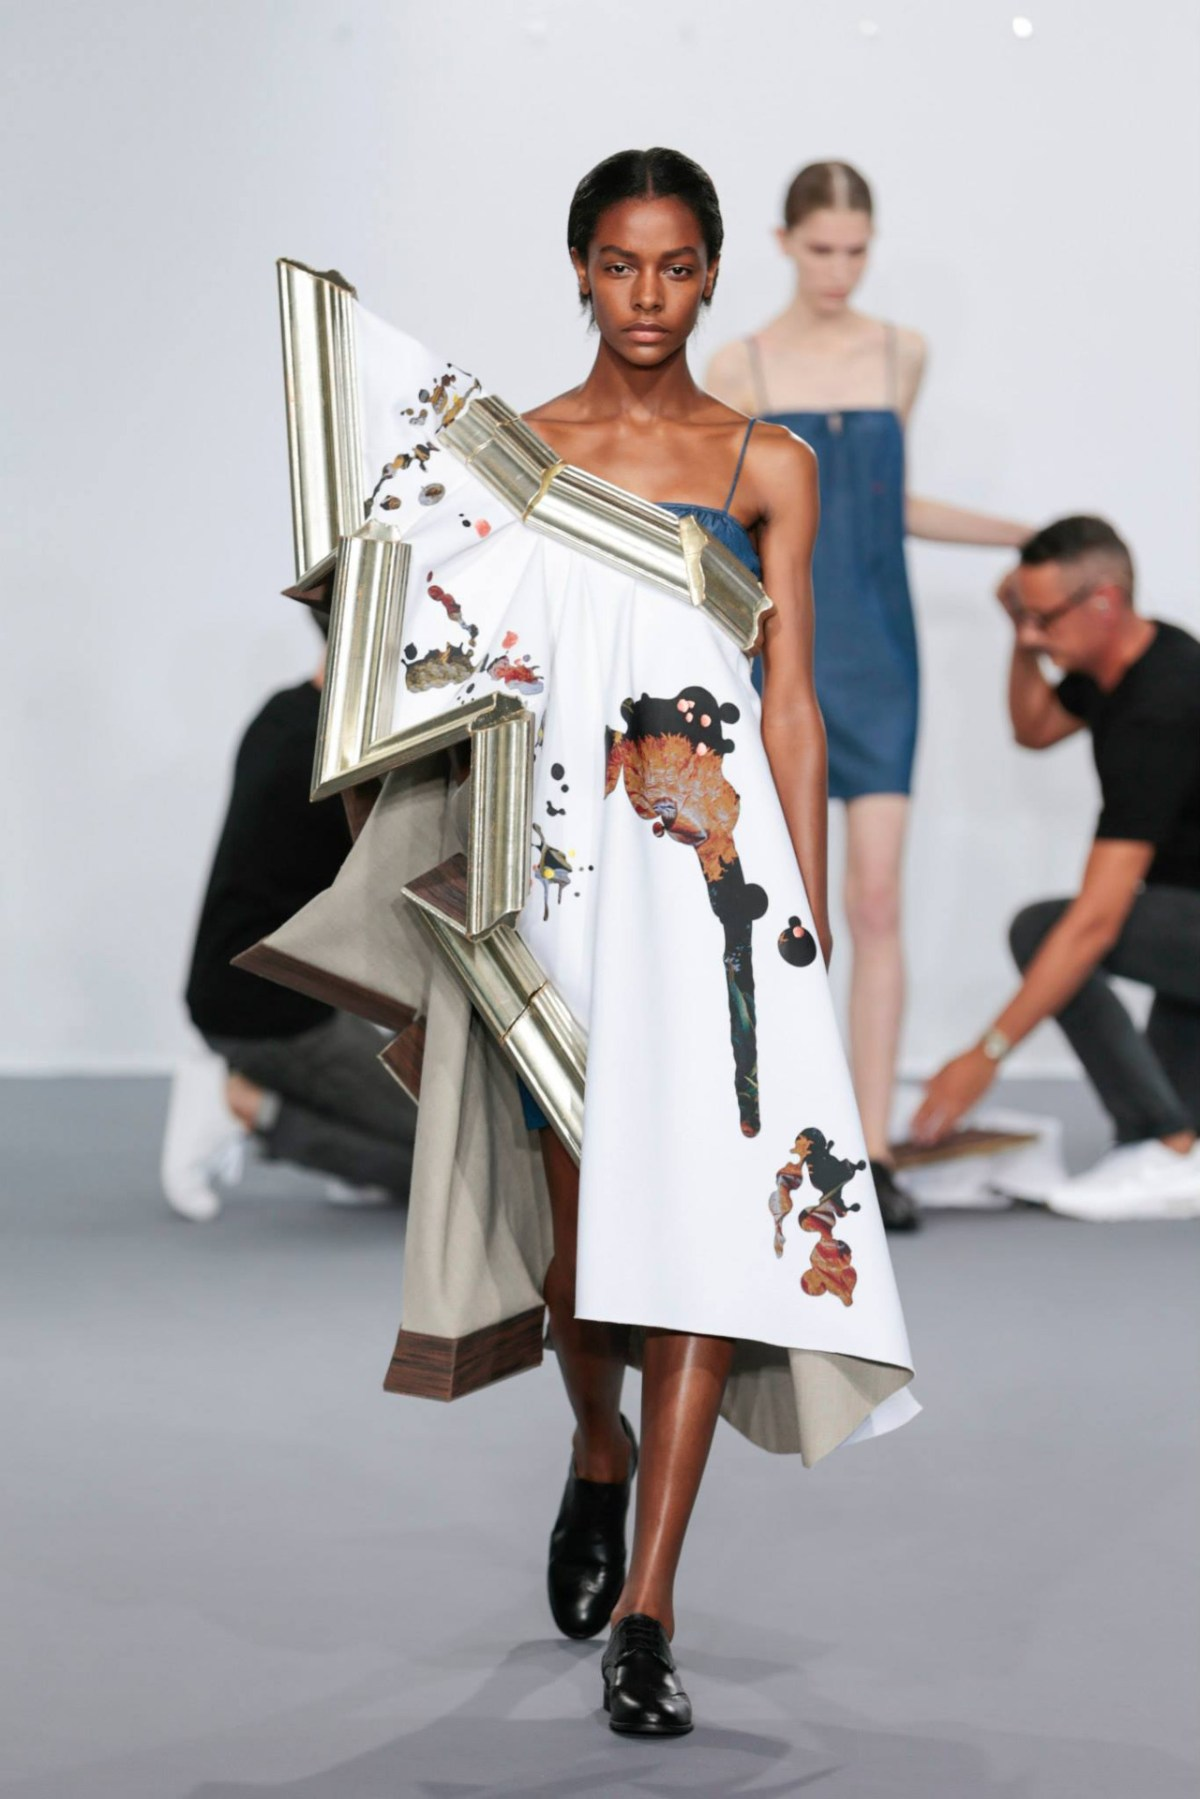 Viktor And Rolf Showcase Their Wearable Art Collection In